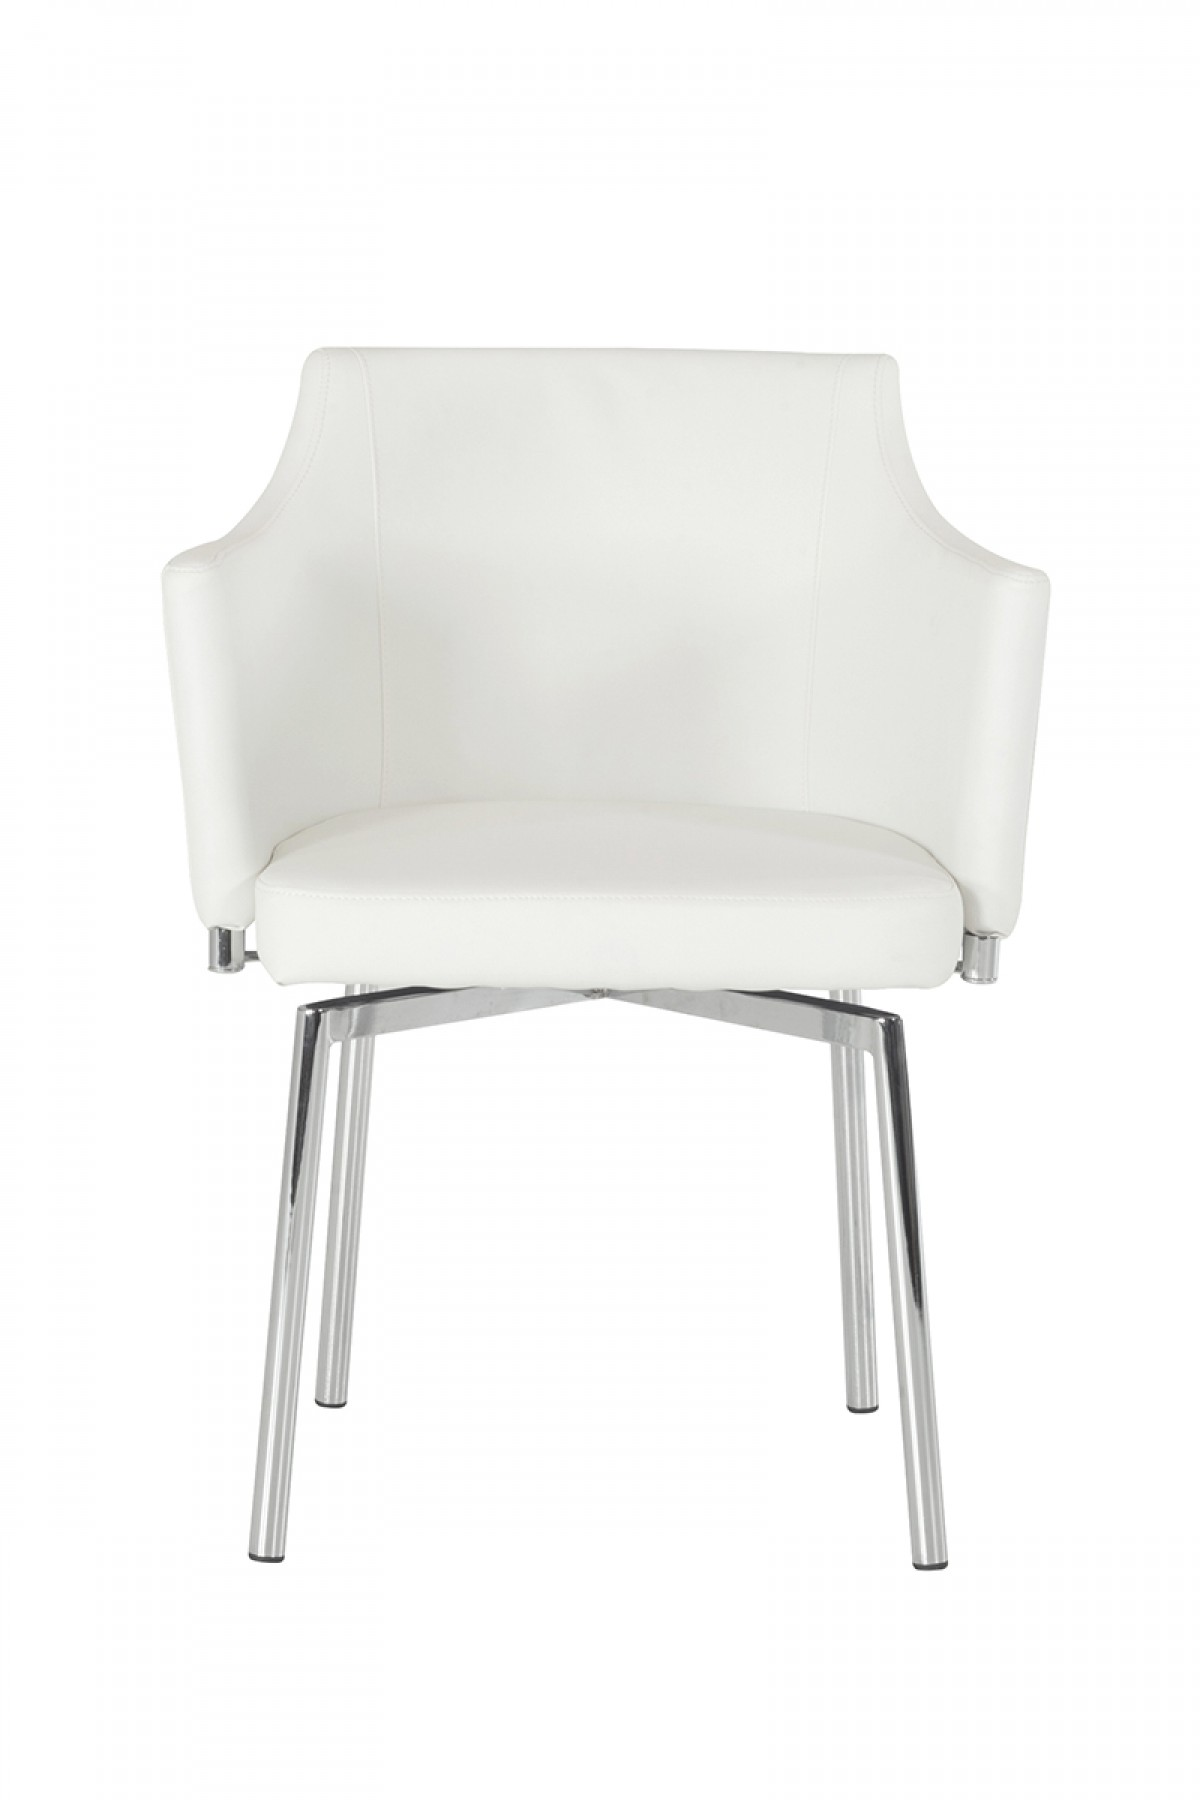 check out the brand new white leatherette dining chair available at advanced interior designs